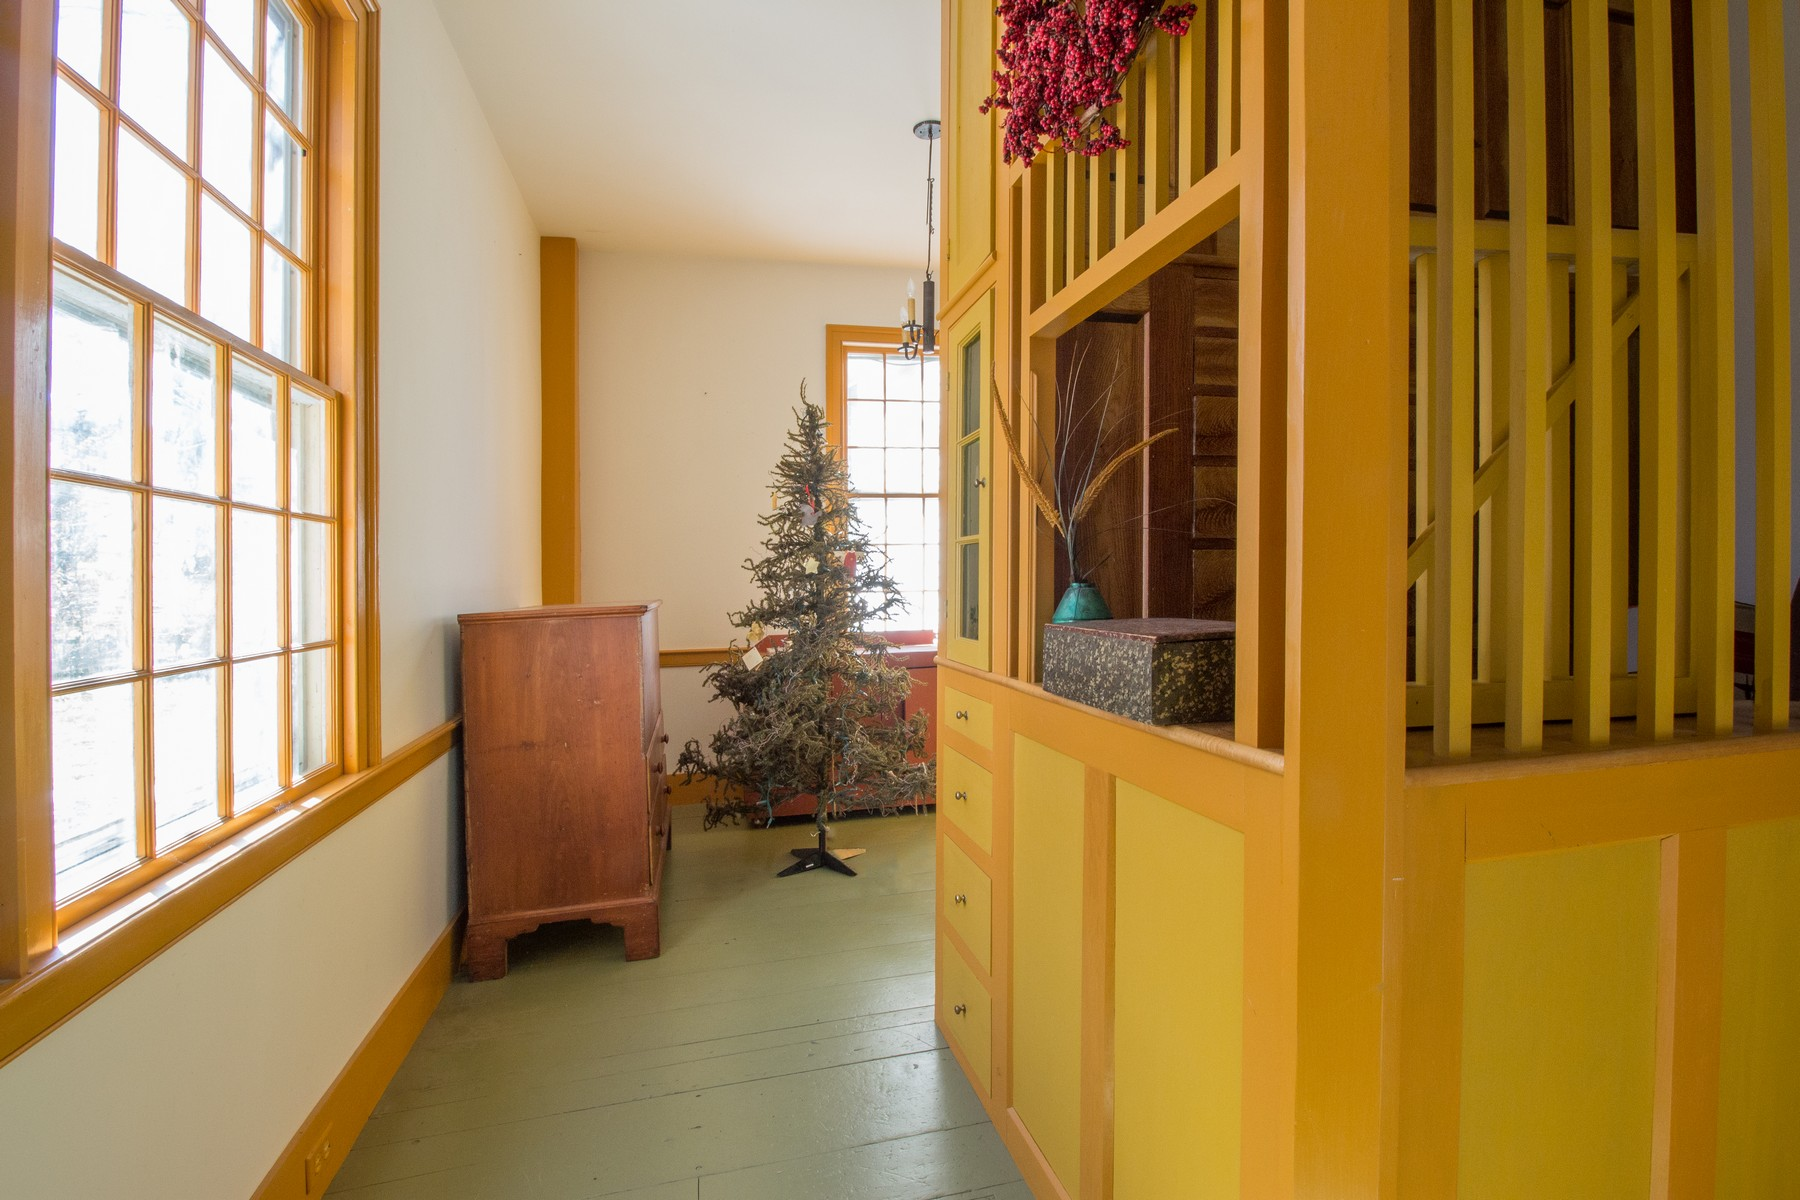 Additional photo for property listing at Beautifully Restored Home Built in 1795 3654  Co Rt 35 Roseboom, New York 13450 États-Unis